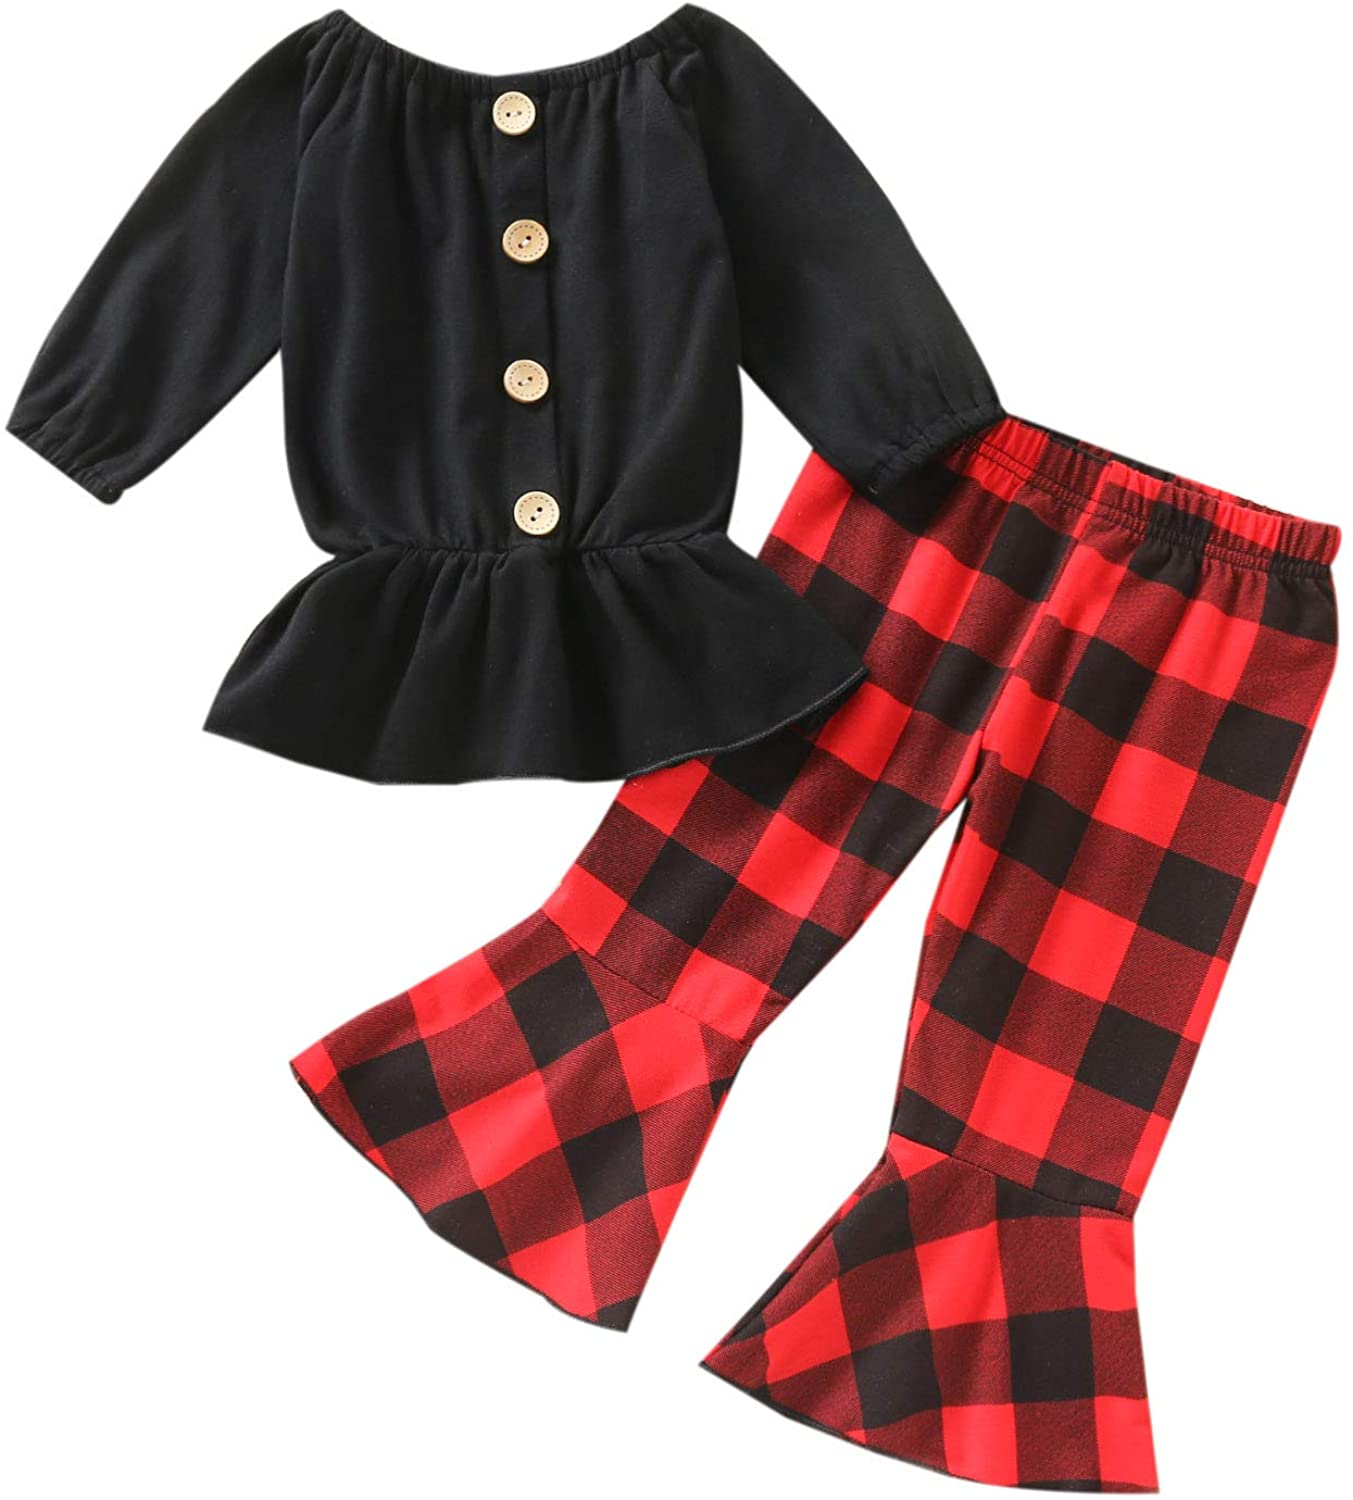 Christmas Toddler Kids Baby Girl Outfit Santa Dress Shirt Top Red Plaid Pants Set with Scarf Fall Winter Clothes